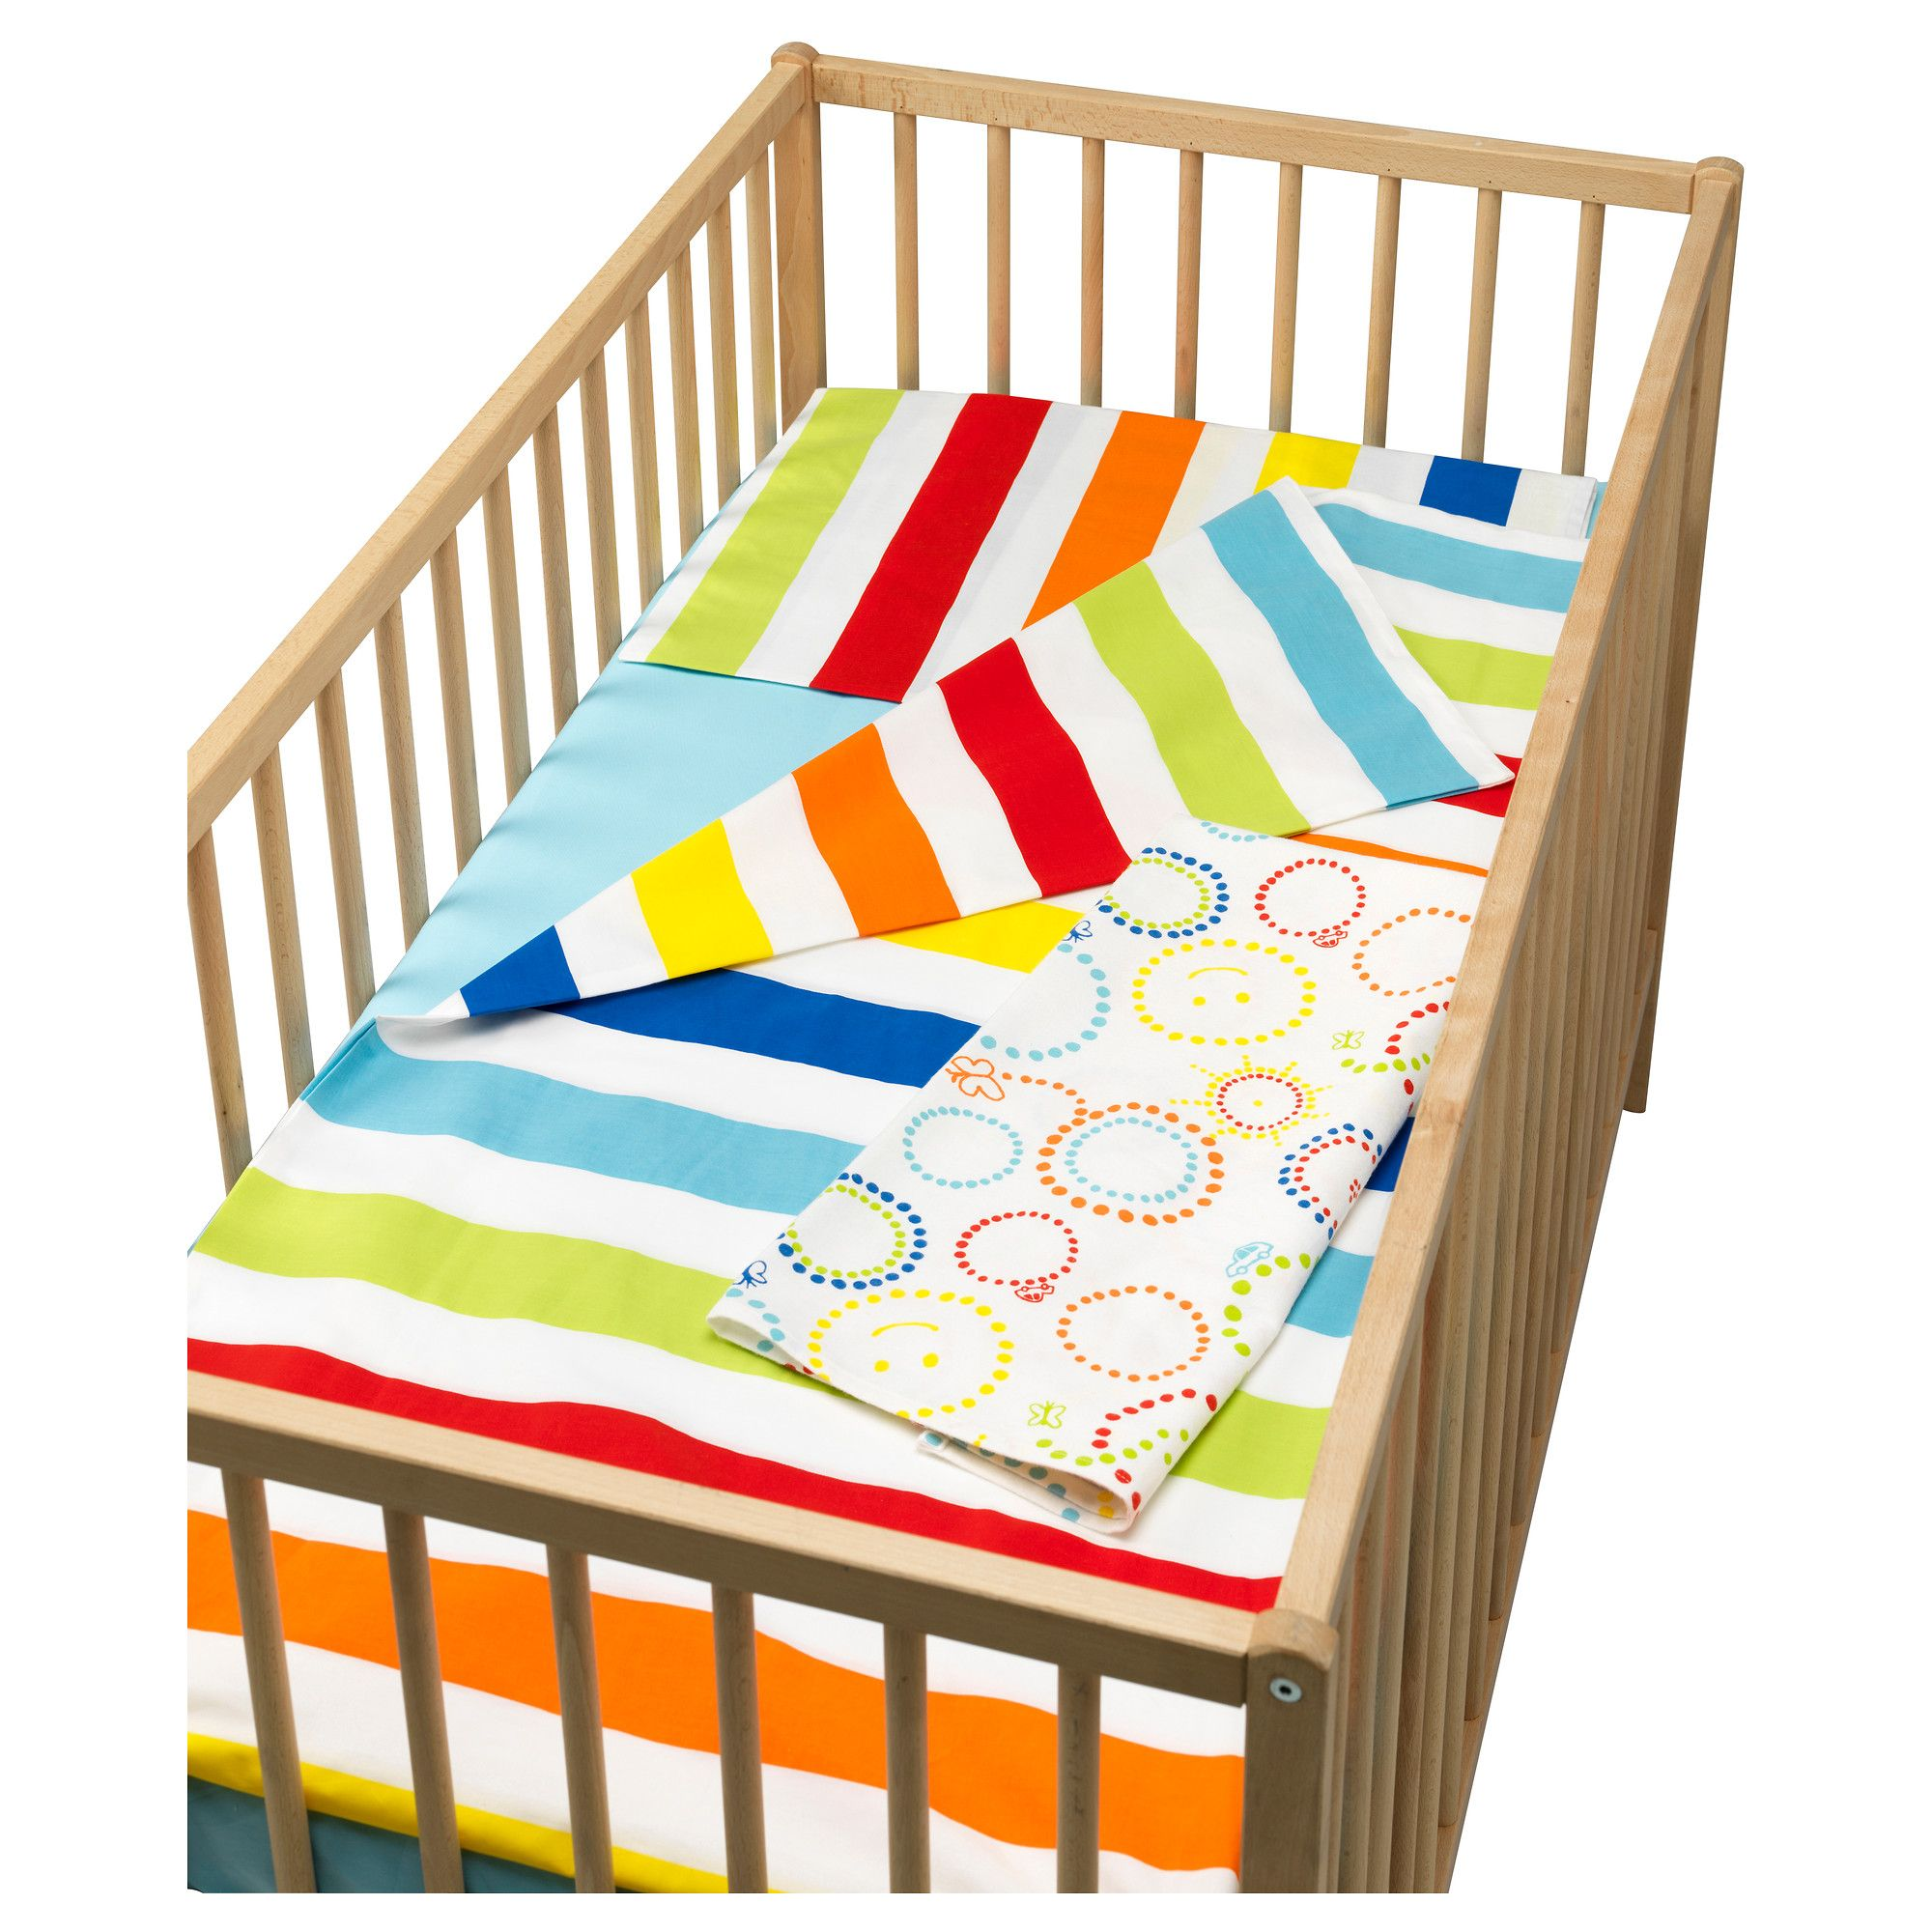 Us Furniture And Home Furnishings With Images Best Baby